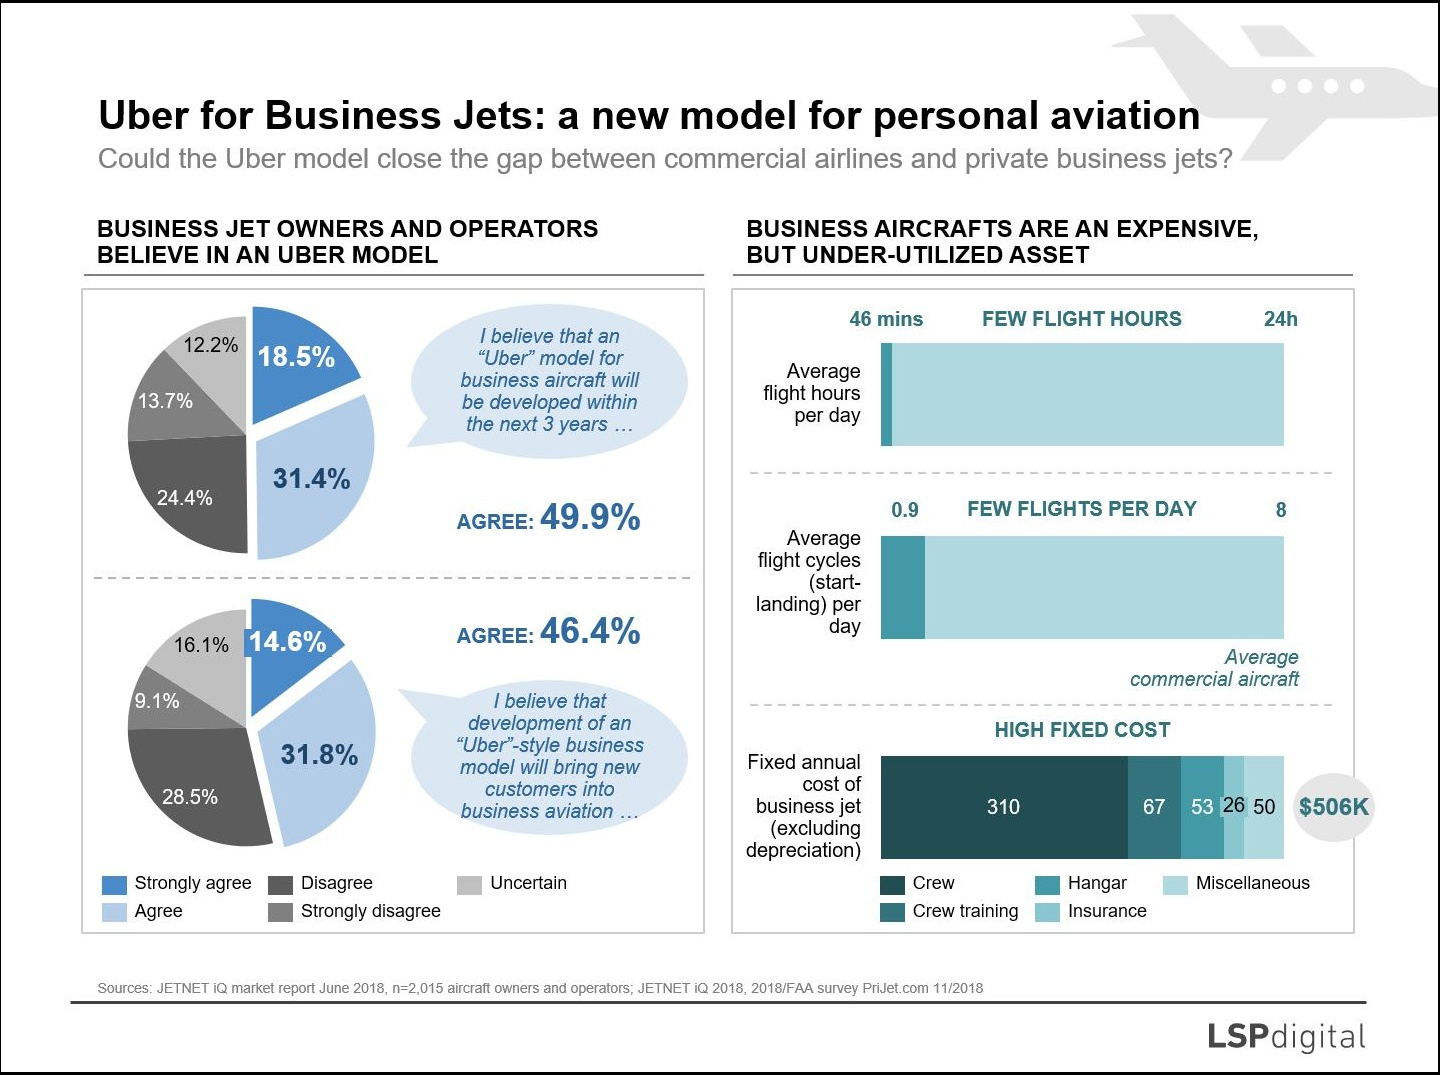 Uber model for Business Jets: a new approach for personal air travel?